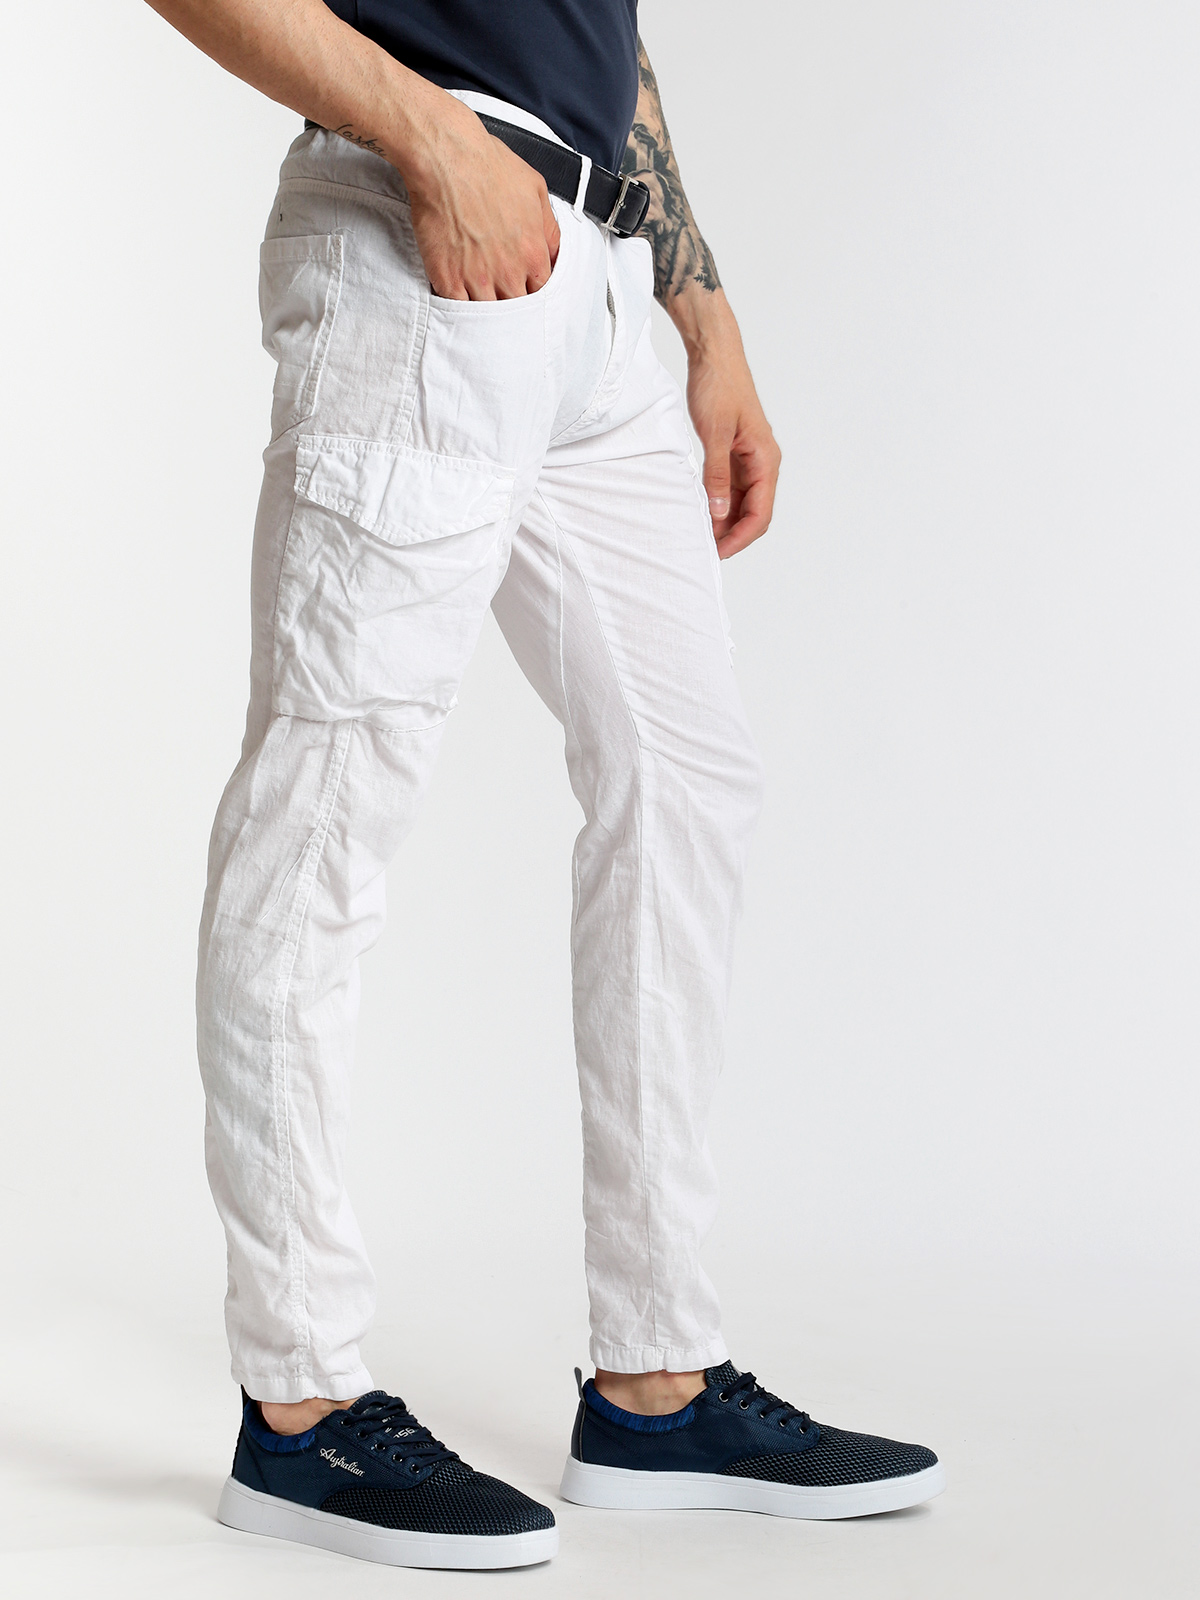 CALEB Cargo Pants Blend Linen And Cotton